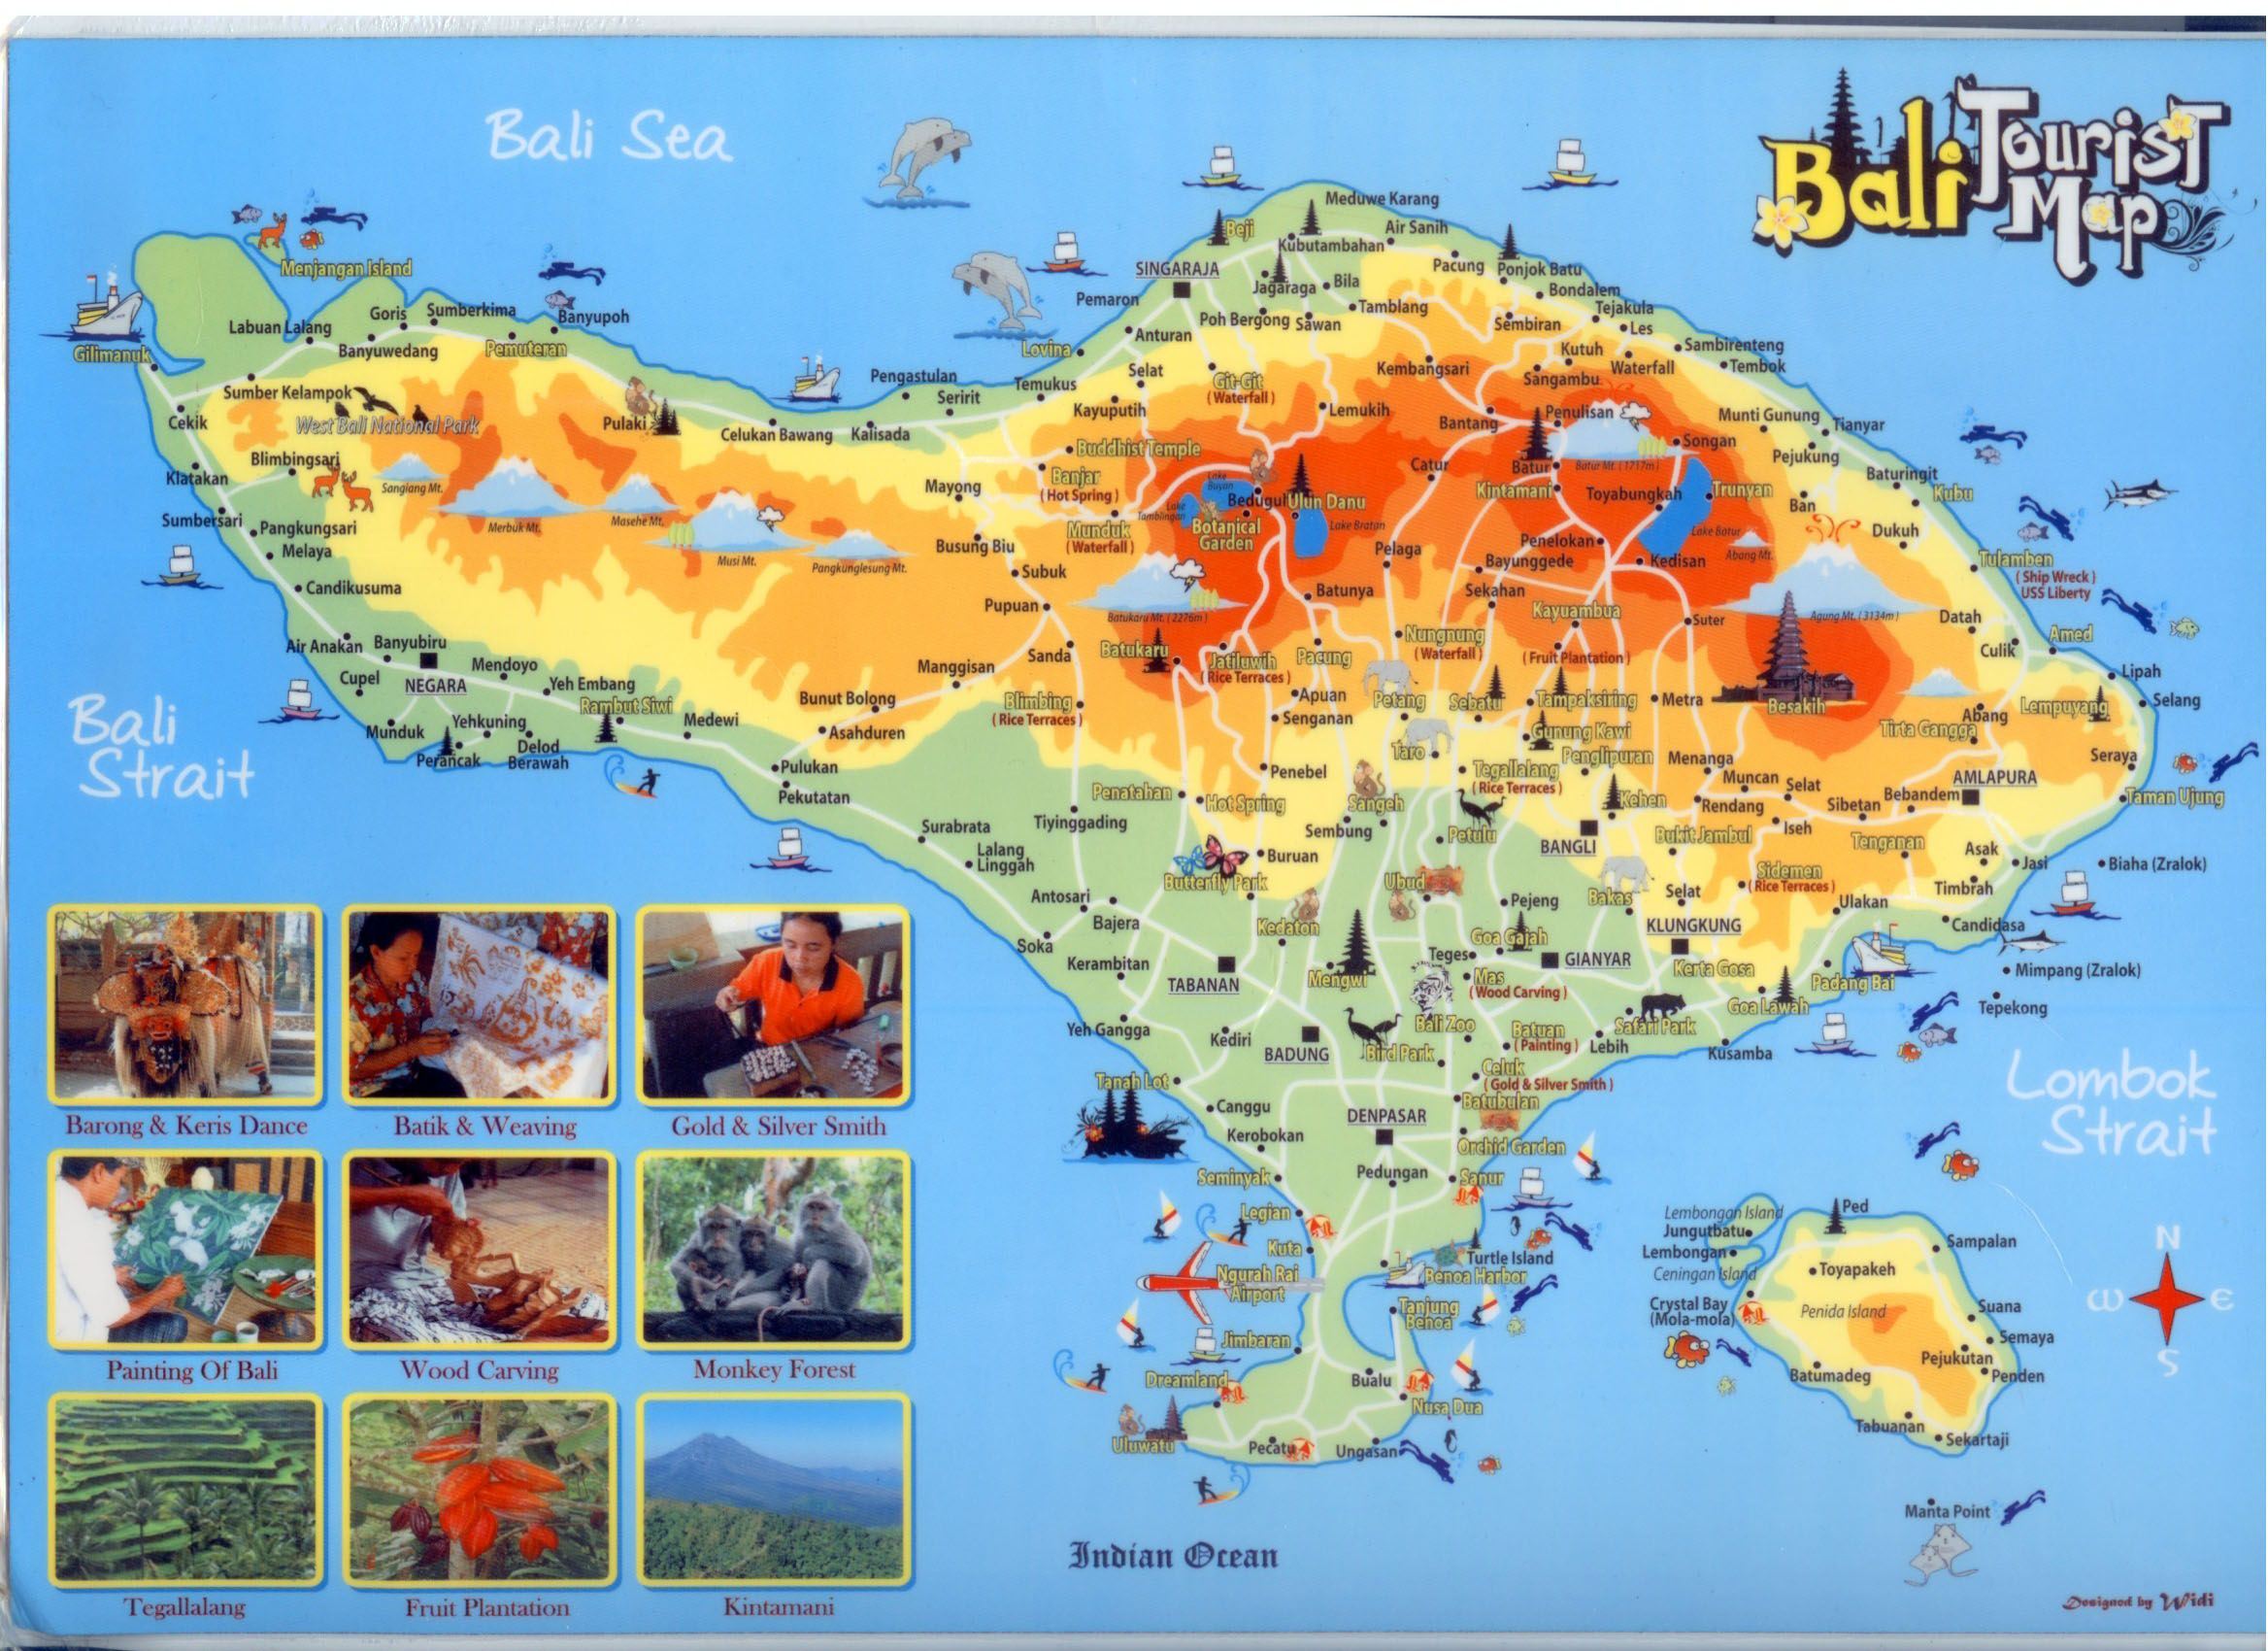 Office Du Tourisme Bali Bali Tourism Board About Bali Bali Map Favorite Places